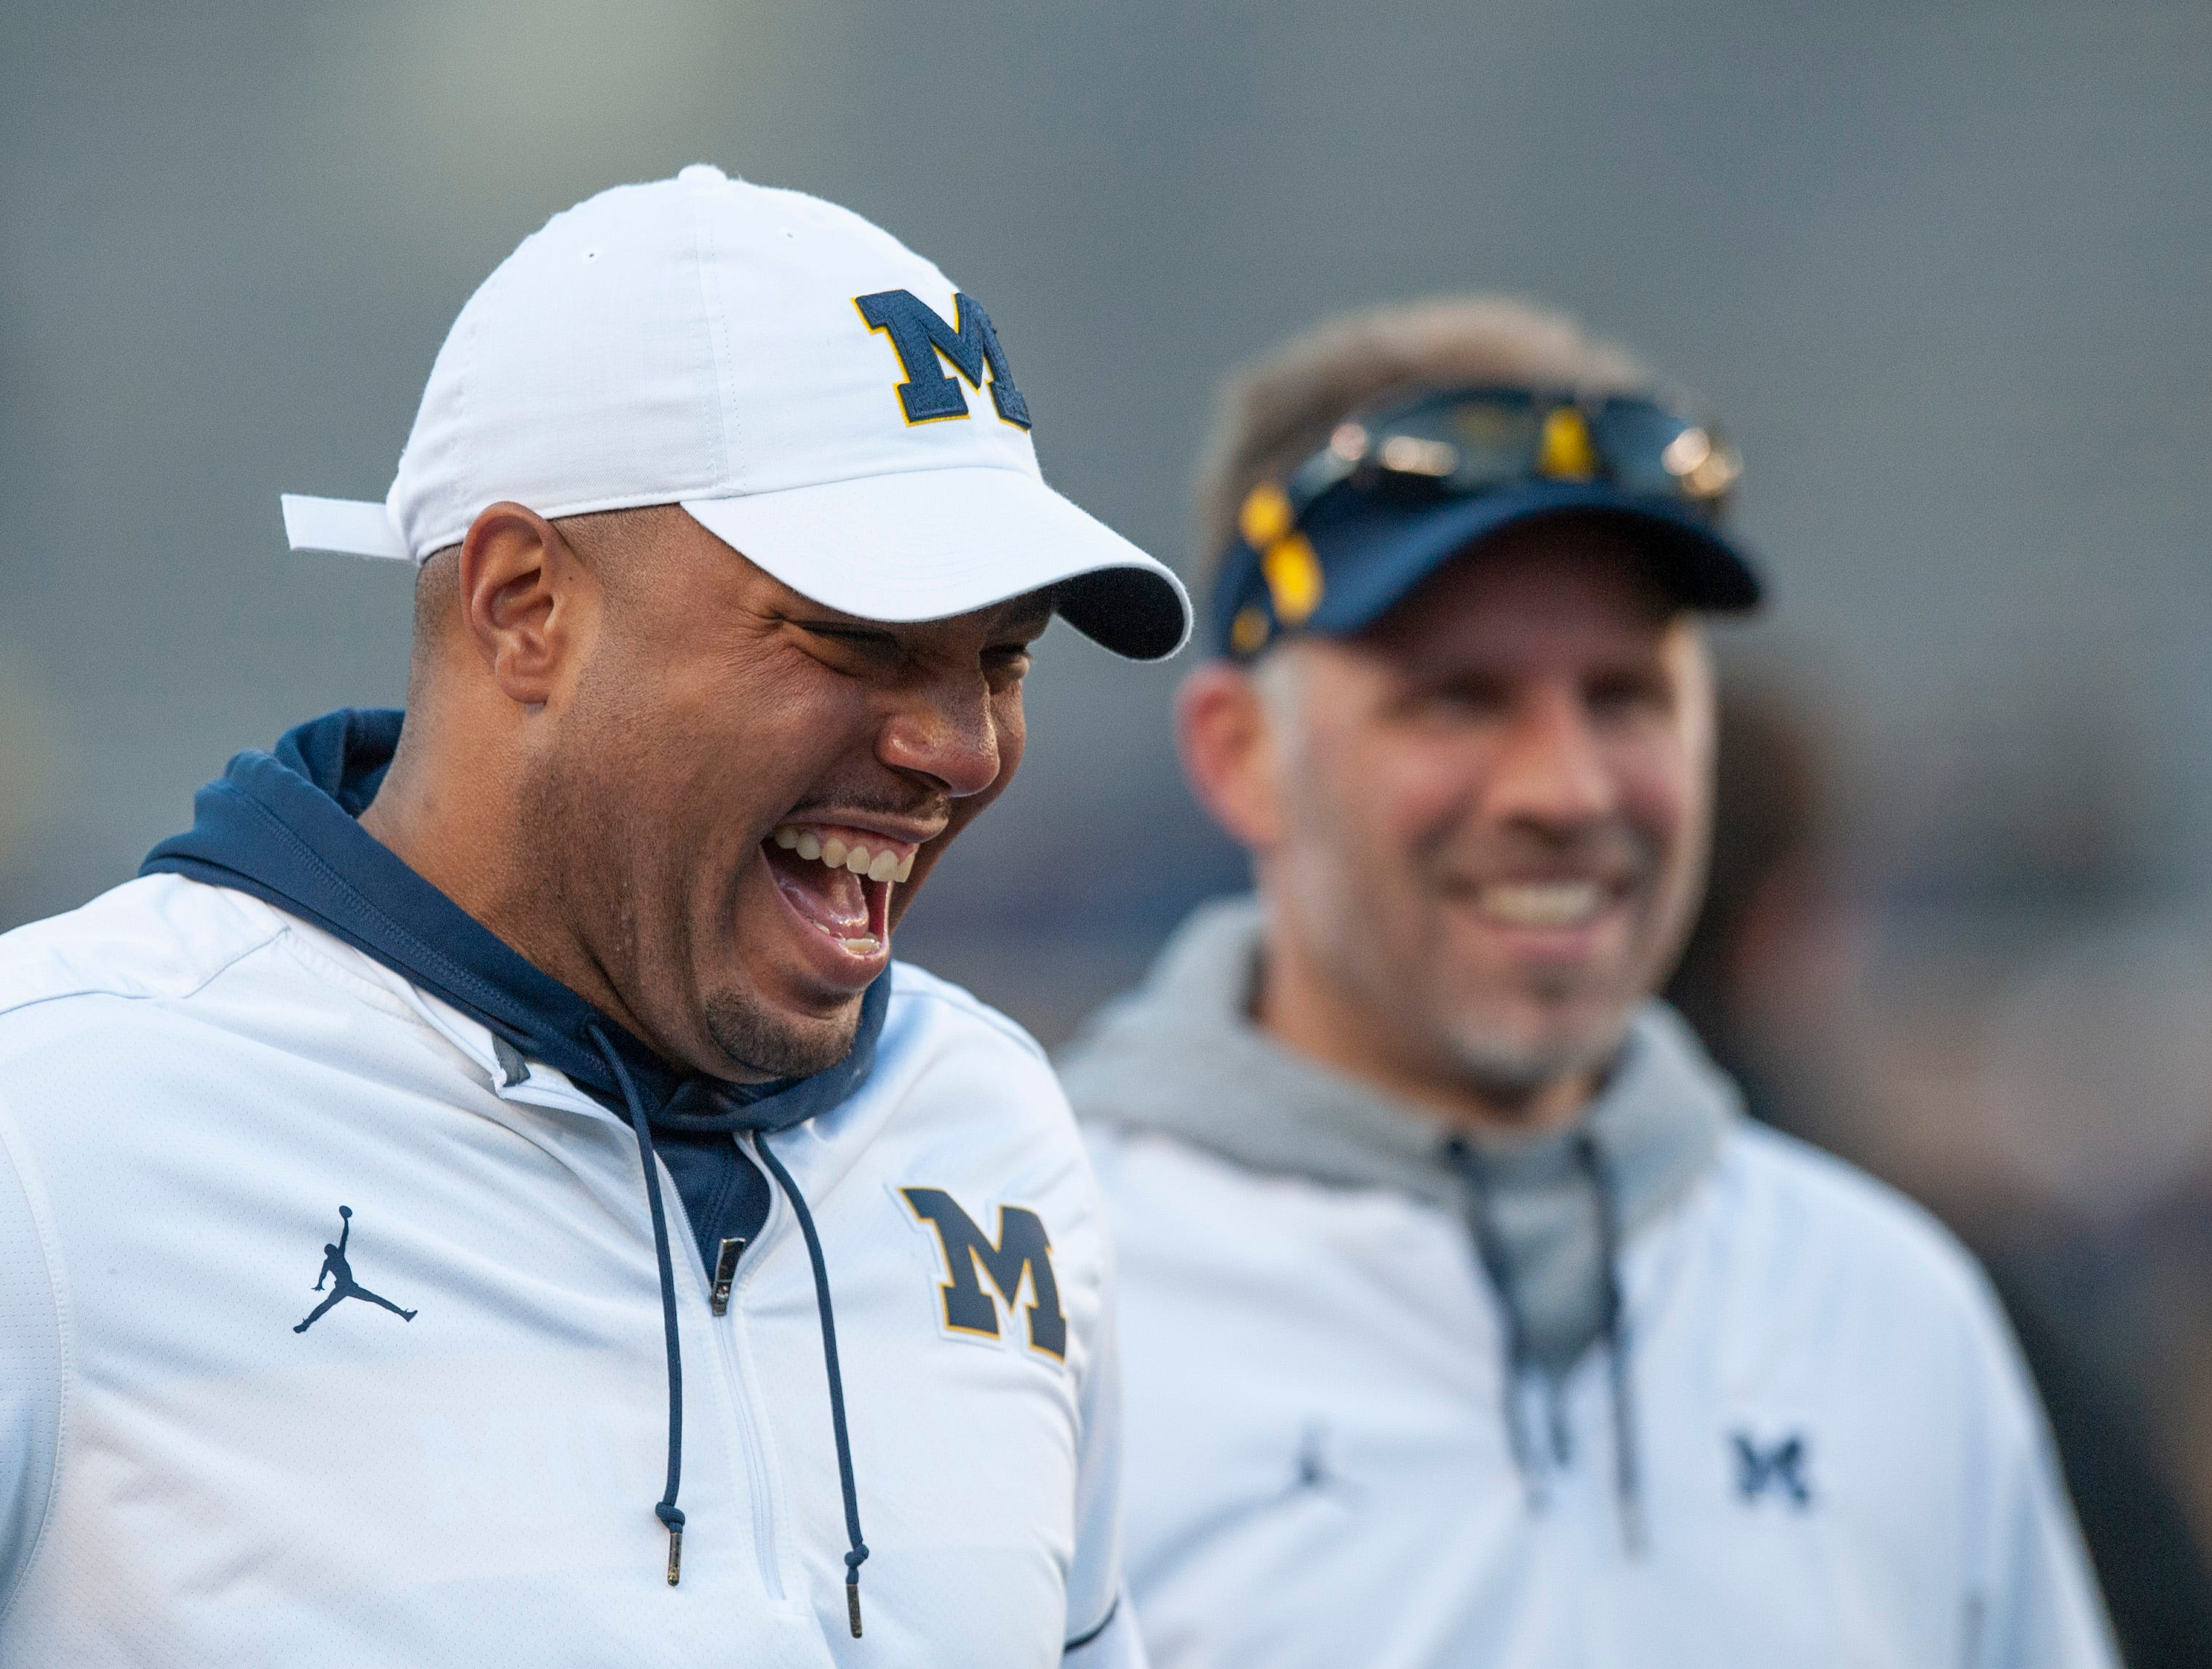 Michigan's new offensive coordinator Josh Gattis, left, is very pleased with a touchdown catch by WR Jack Young during the scrimmage. Also smiling is new quarterbacks coach Ben McDaniels.